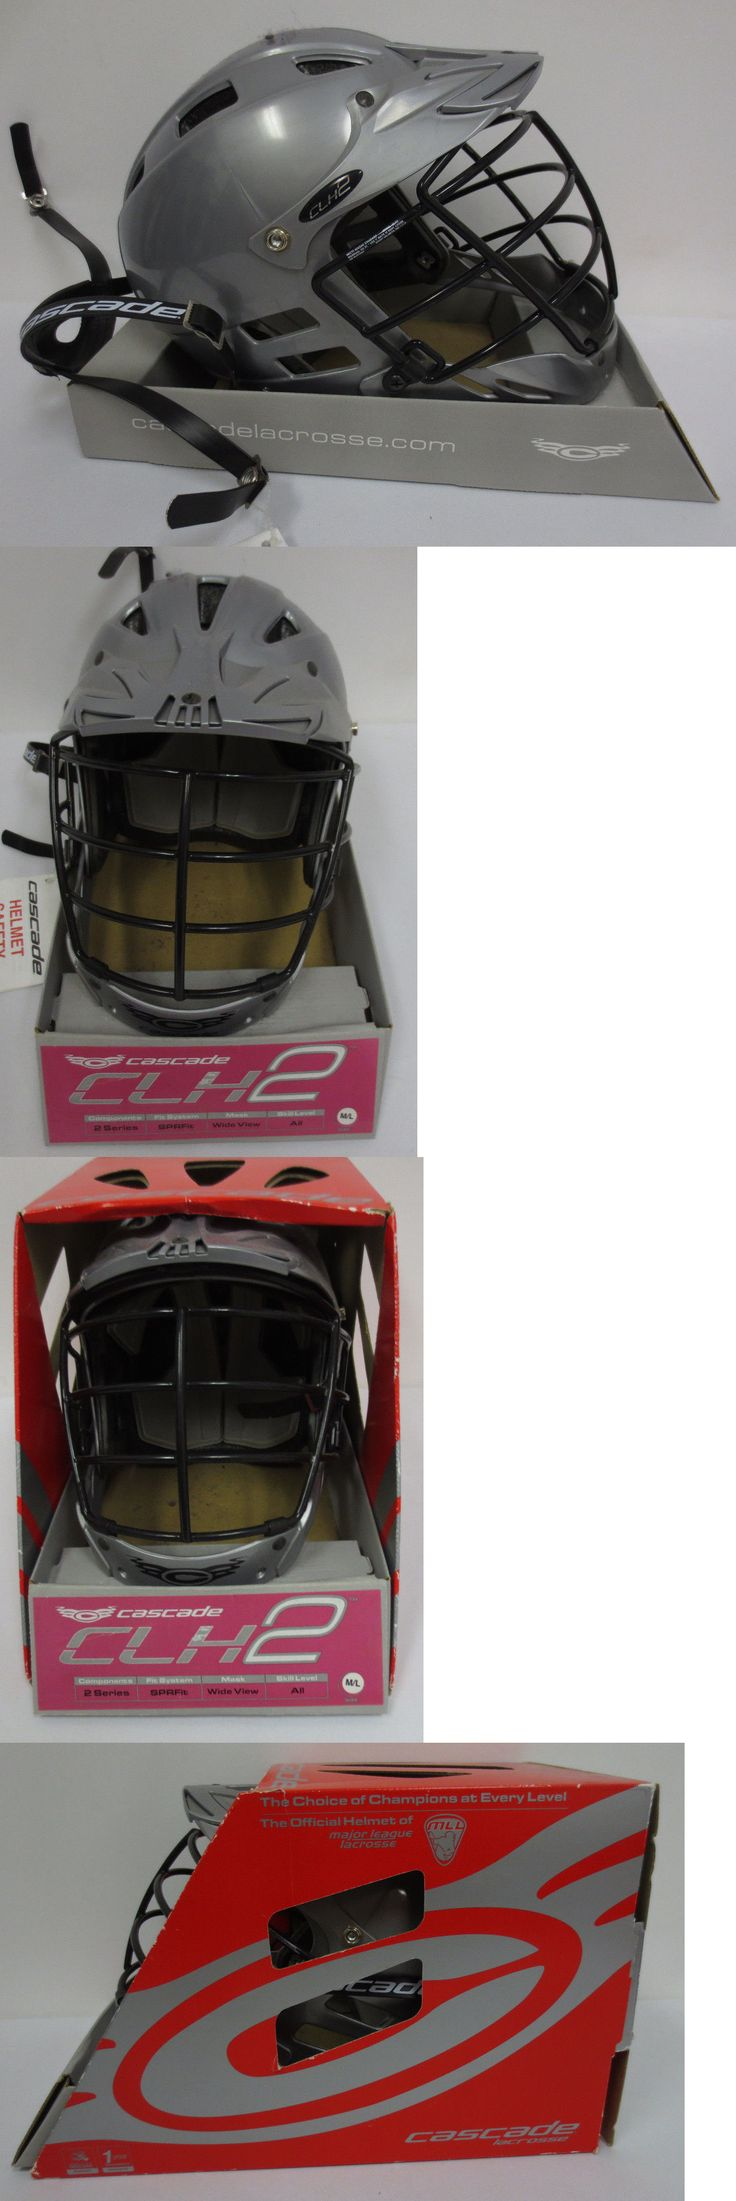 Protective Gear 62164: Cascade Lacrosse Ncaa Helmet Clh2 Sprfit Wideview 2 Series Chin Strap Protective BUY IT NOW ONLY: $59.95